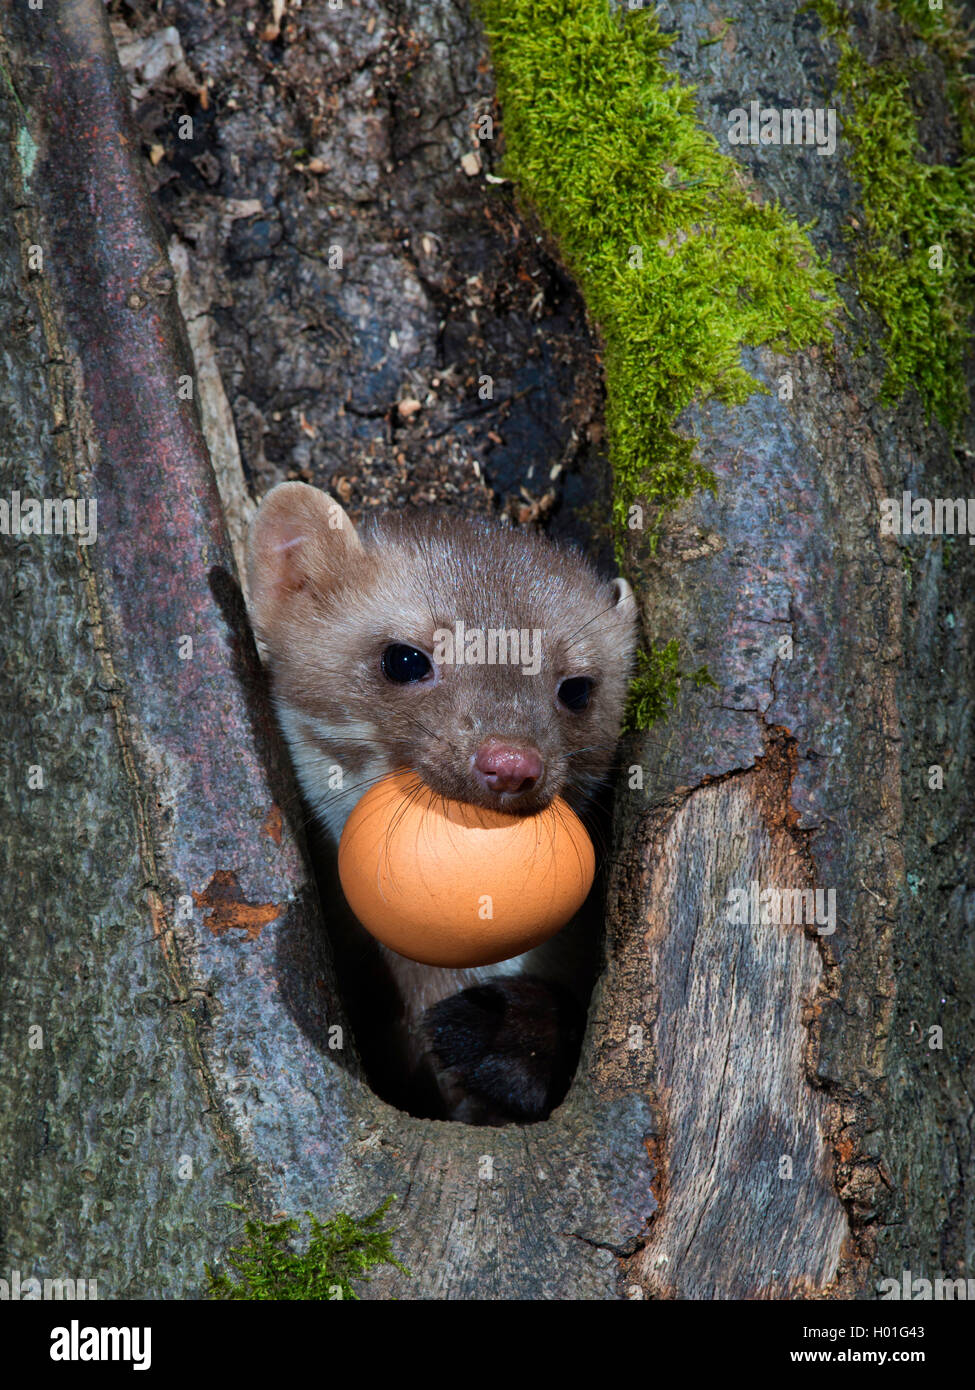 Beech marten, Stone marten, White breasted marten (Martes foina), mit hen's egg in its mouth, Germany Stock Photo